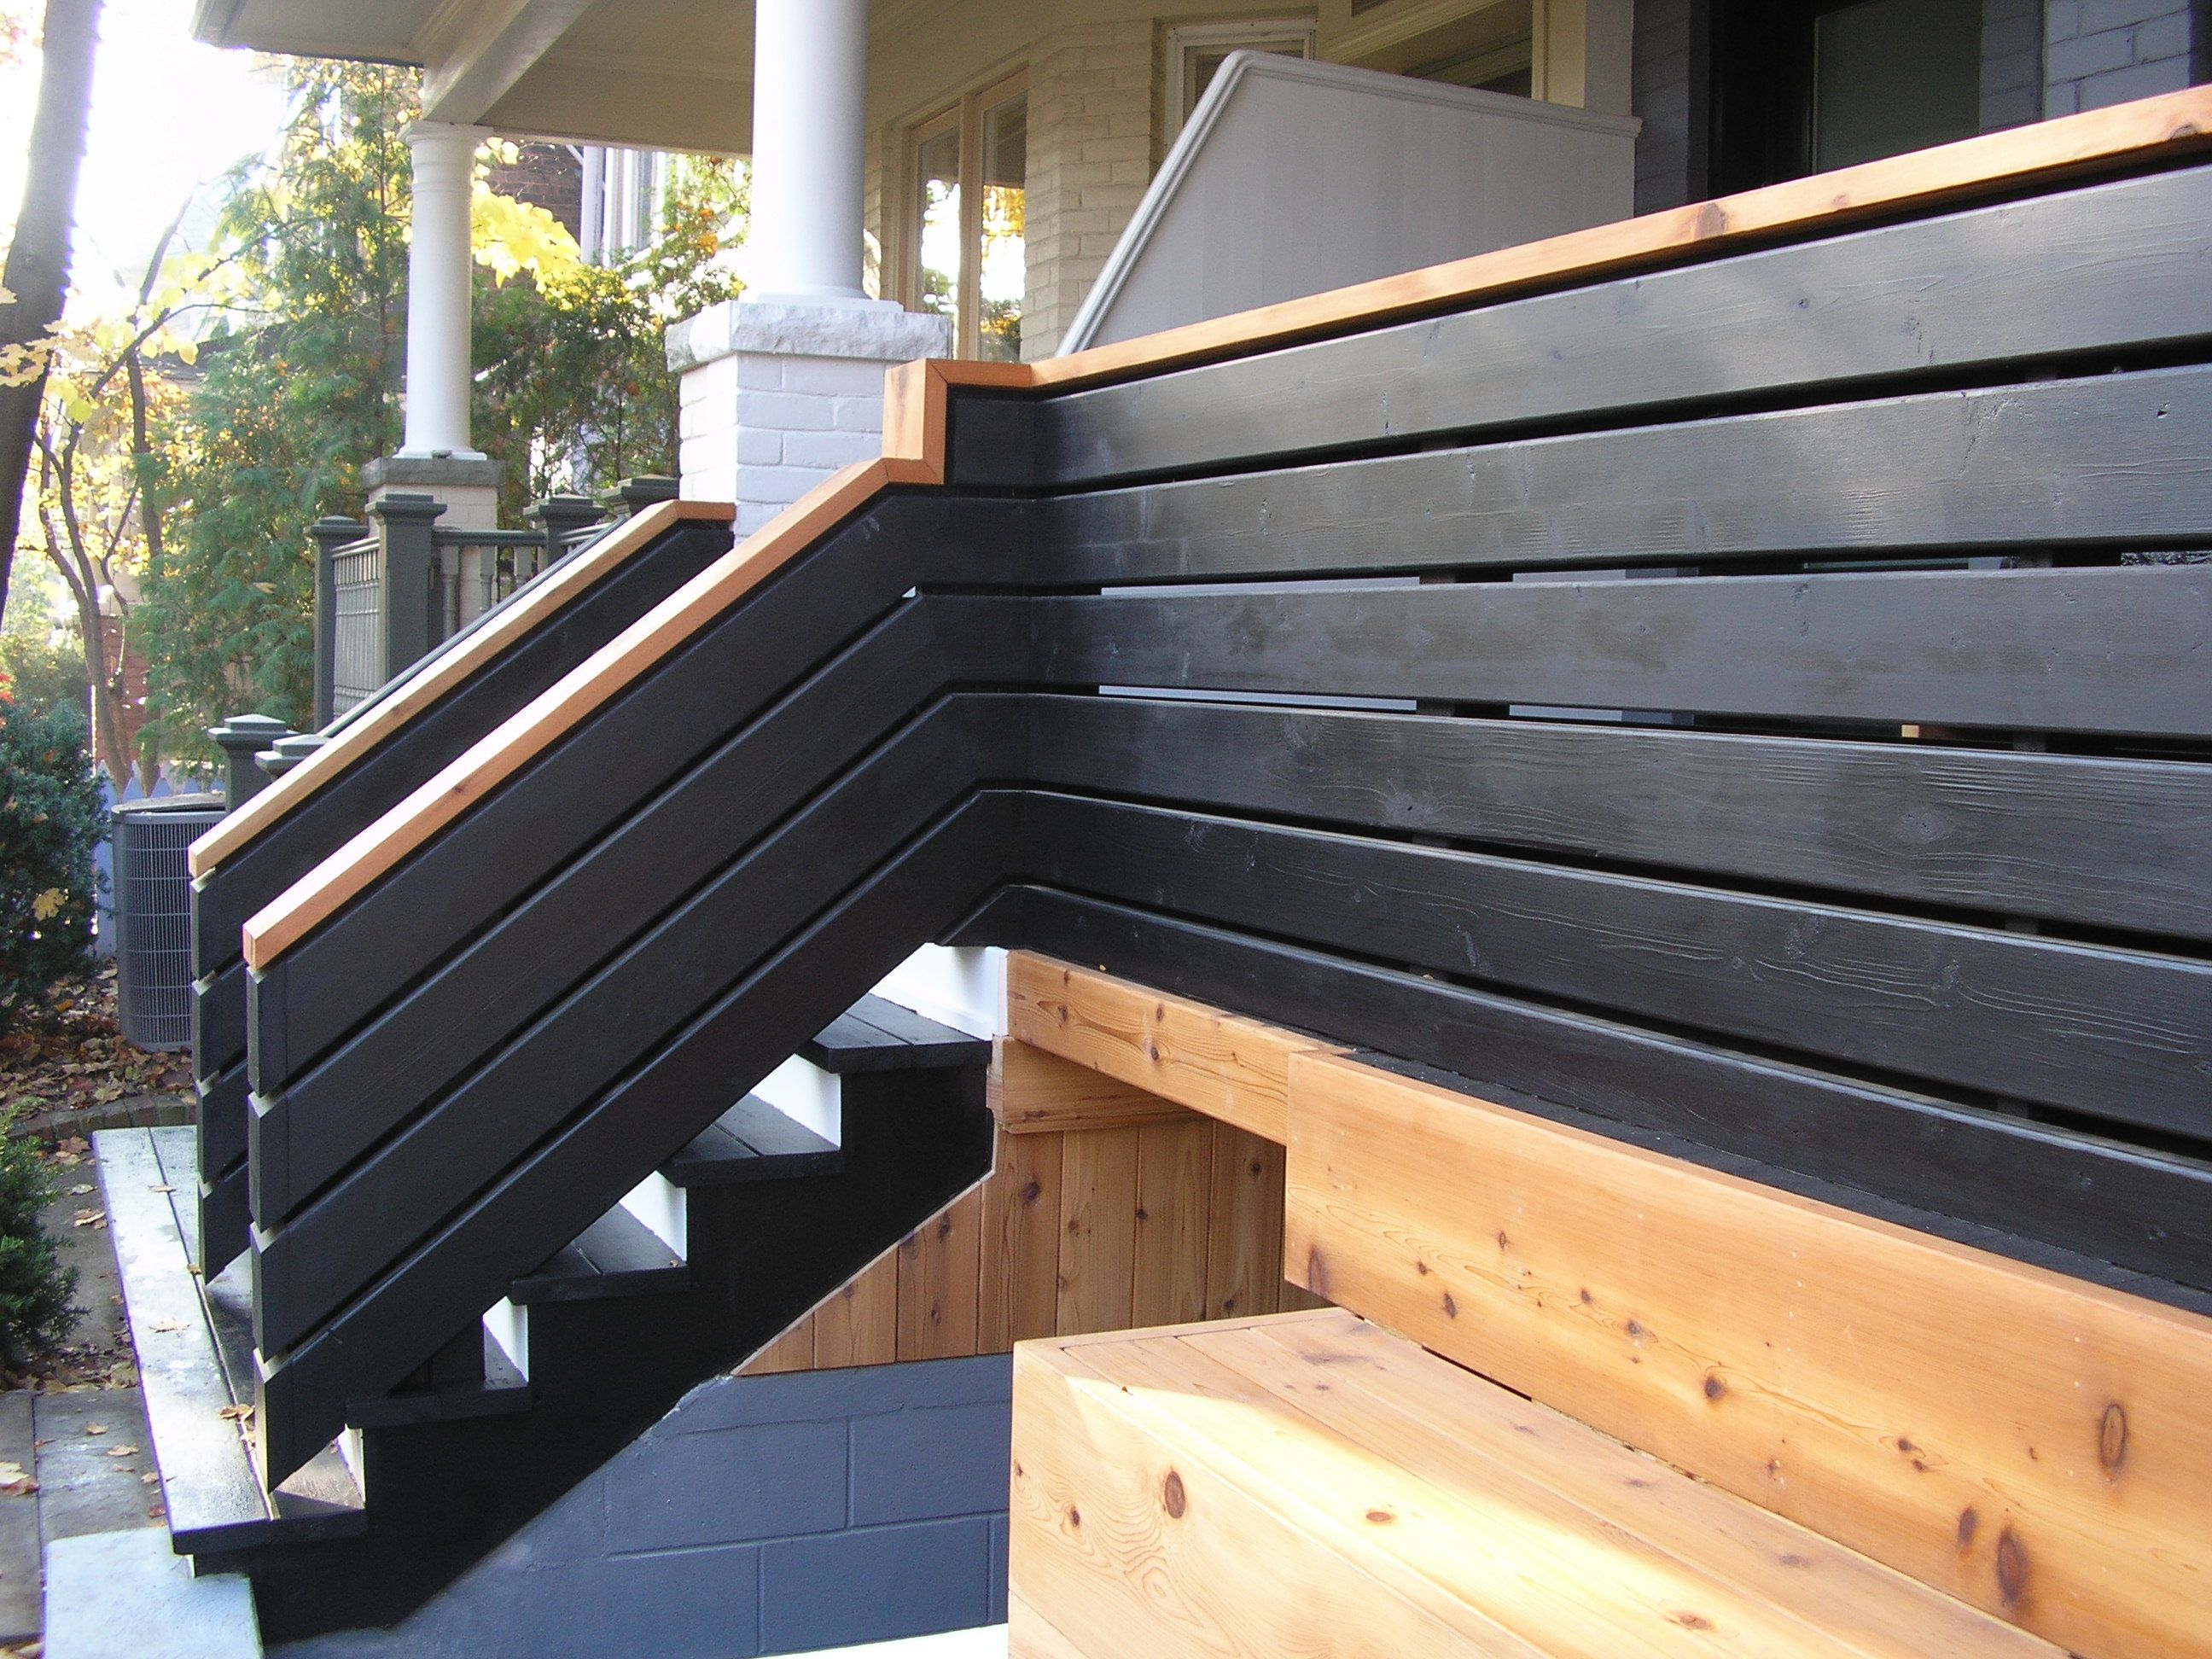 Cedar fence and decking as well as black solid stain and flood uv